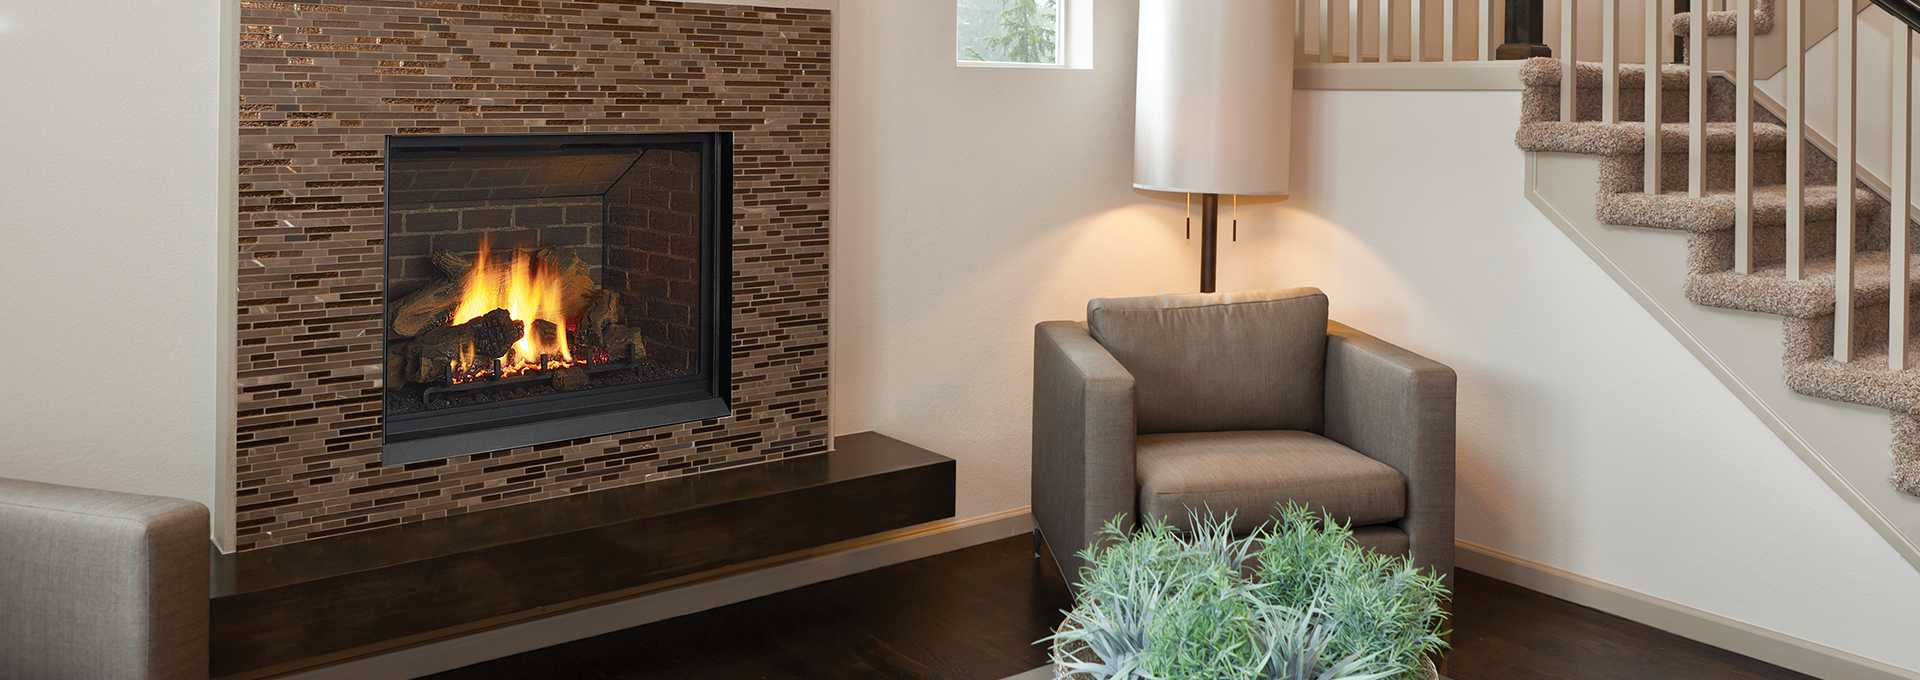 Types of Gas Fireplaces Explained